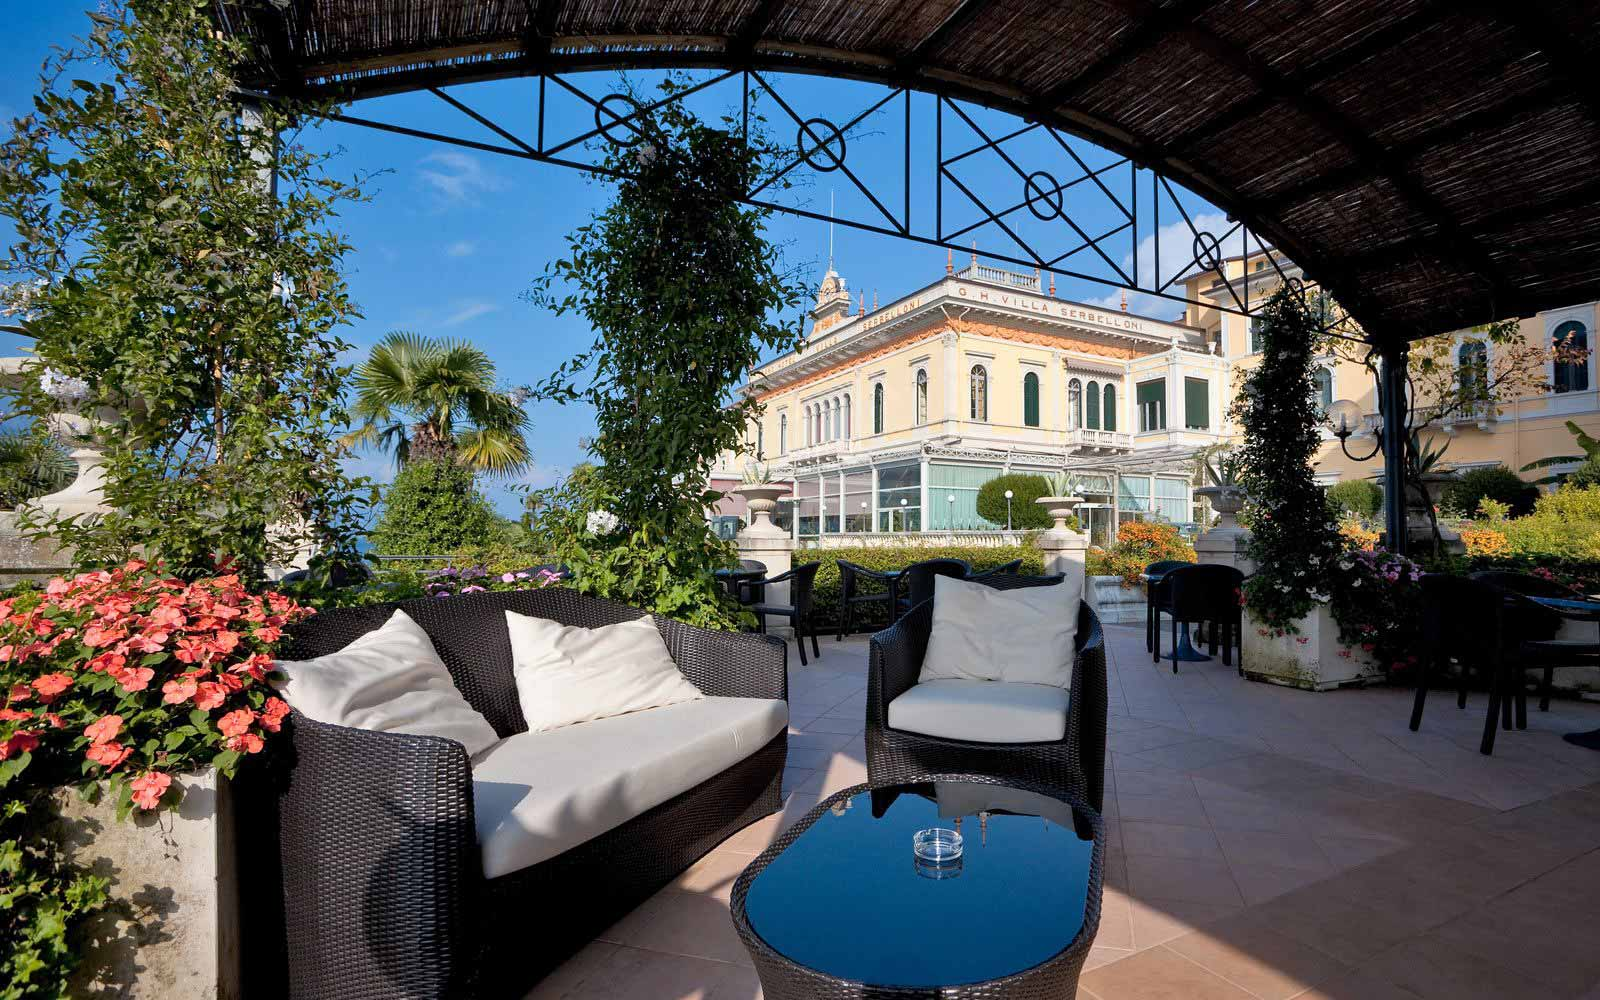 Sunny terrace at Grand Hotel Villa Serbelloni